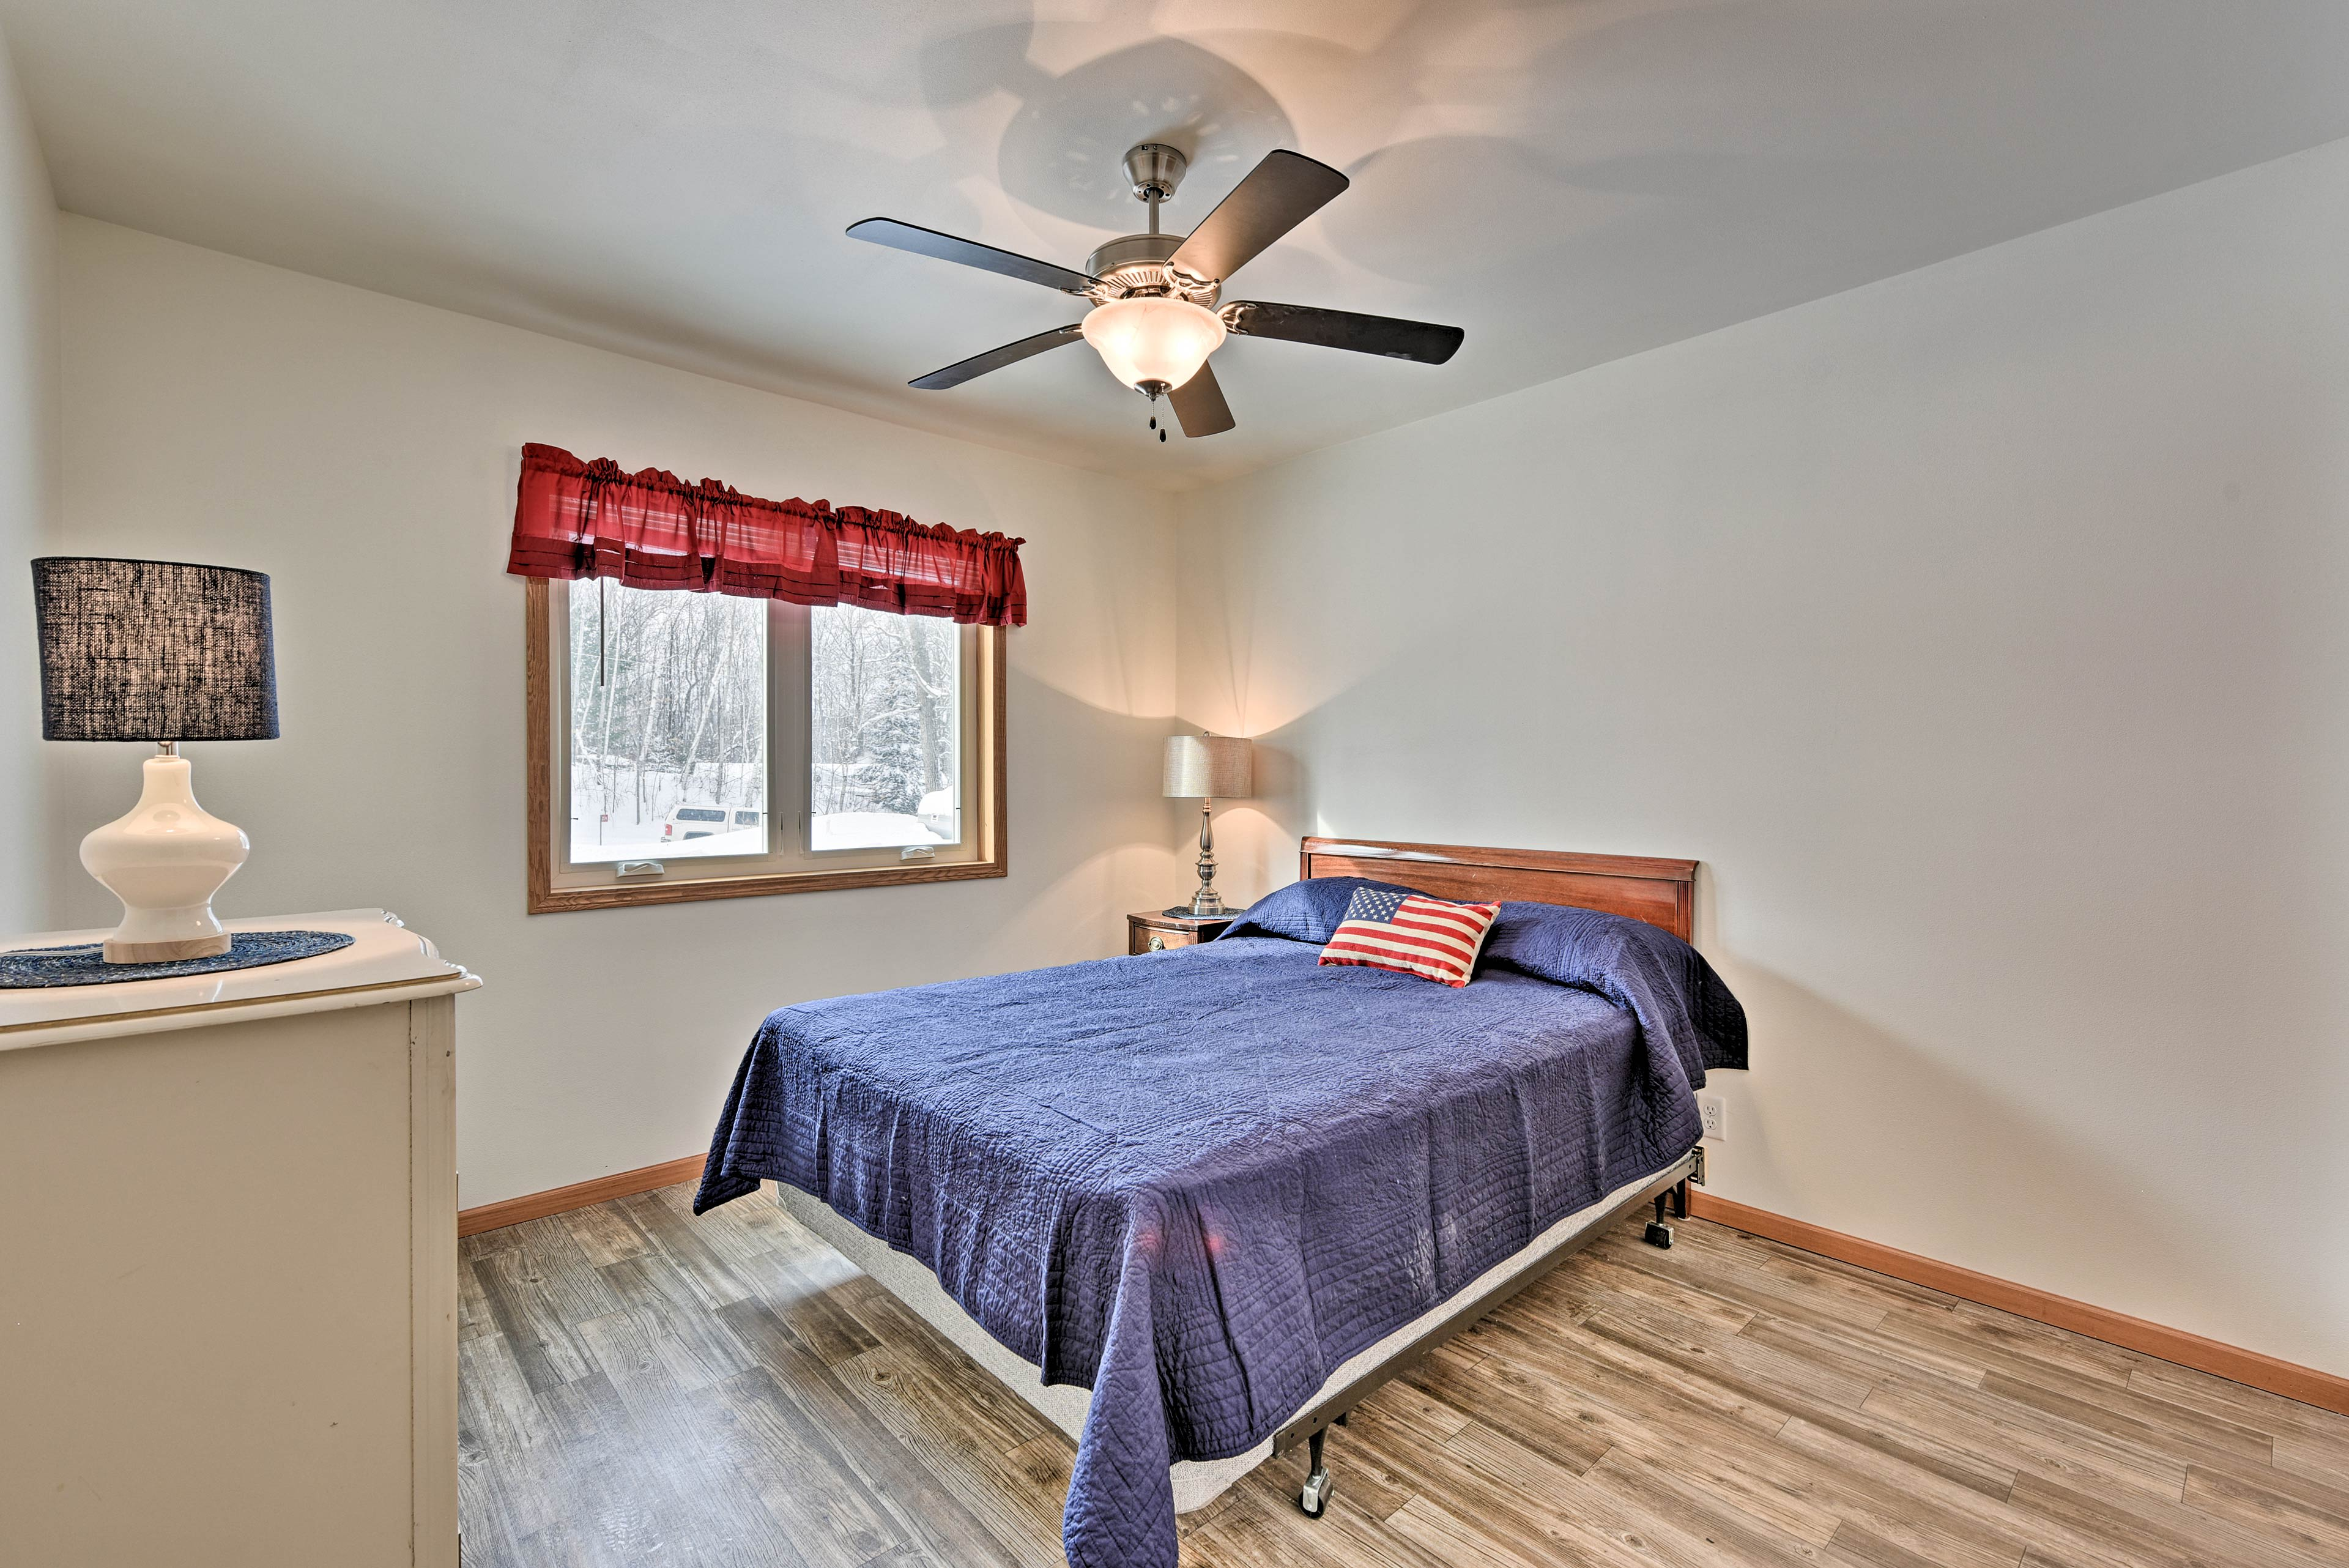 Another queen-sized bed is located in the third bedroom.